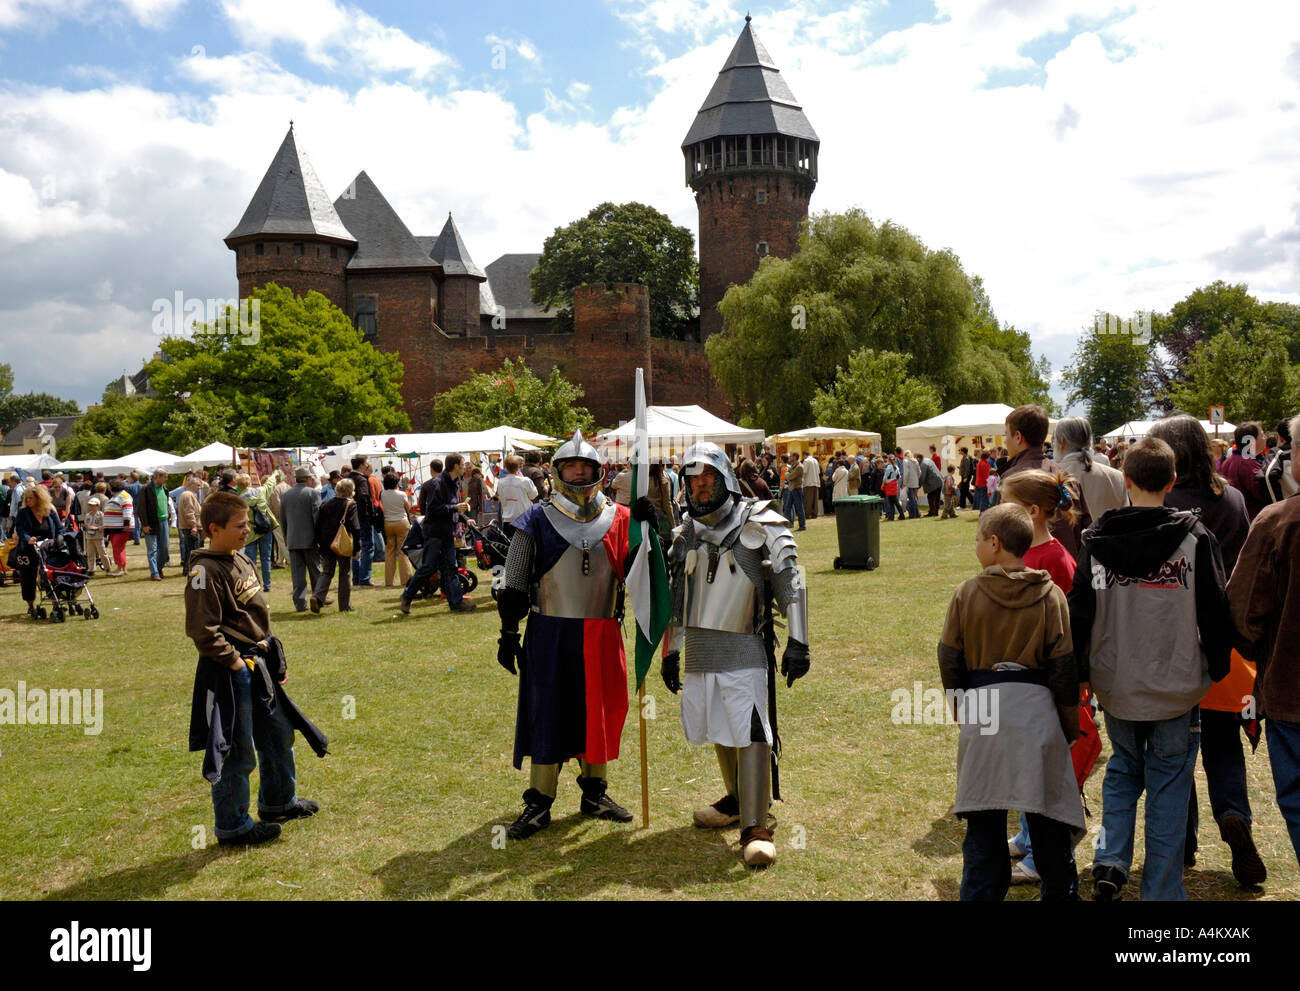 Krefeld, Germany. Flachsmarkt at Burg Linn, 2006. Knights in armour. - Stock Image